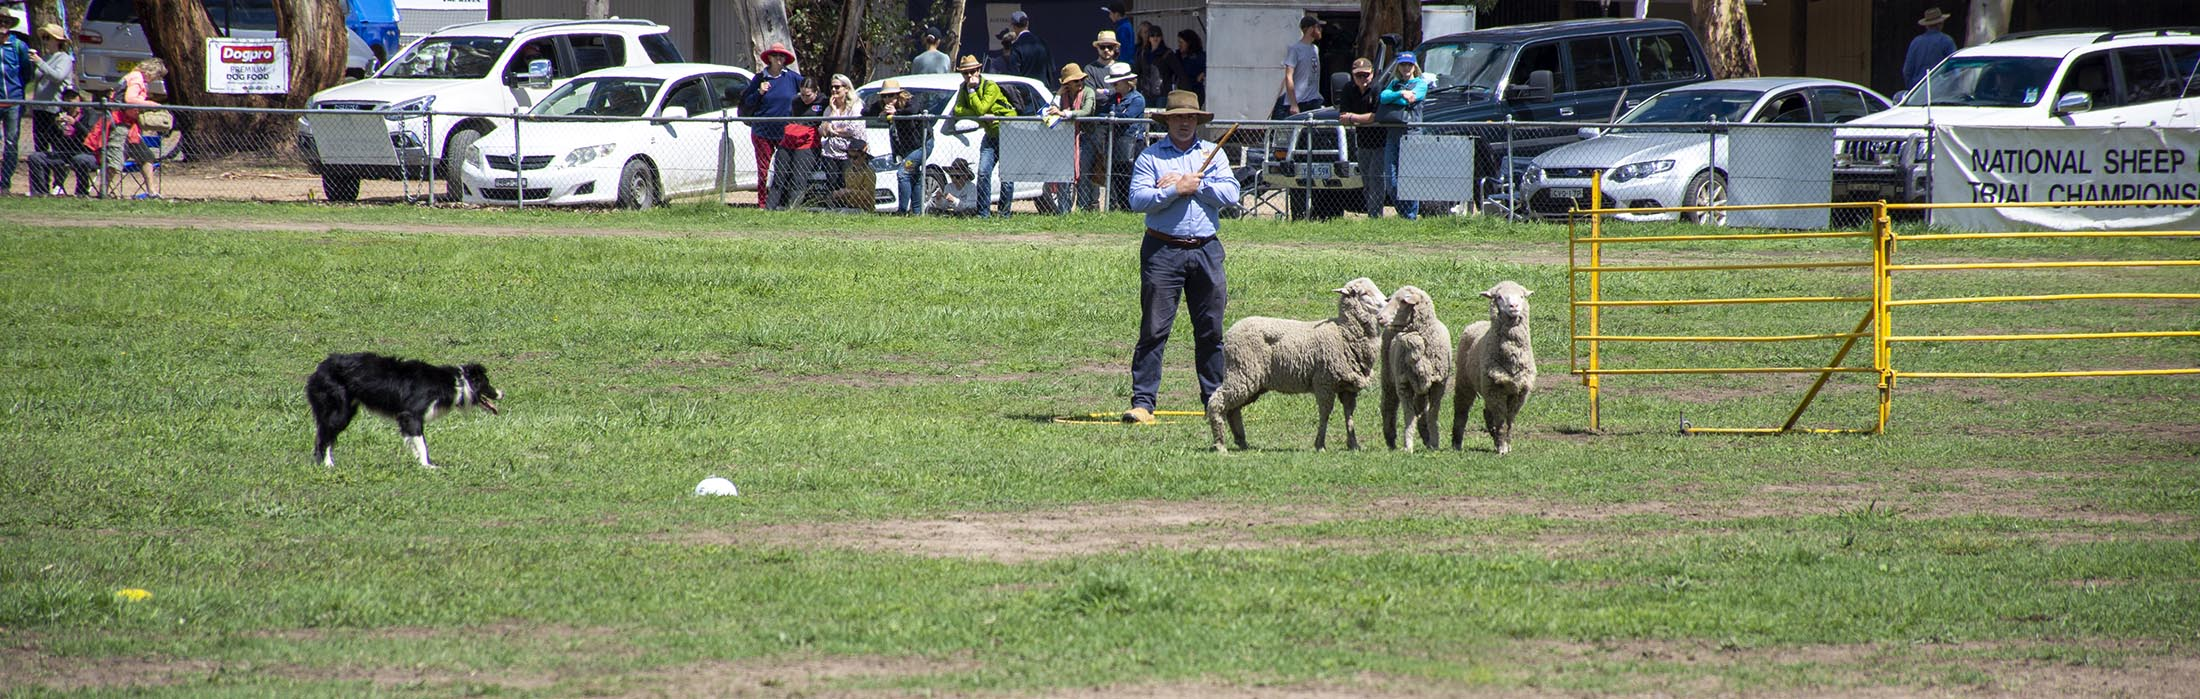 About National Sheep Dog Trial Championships Canberra